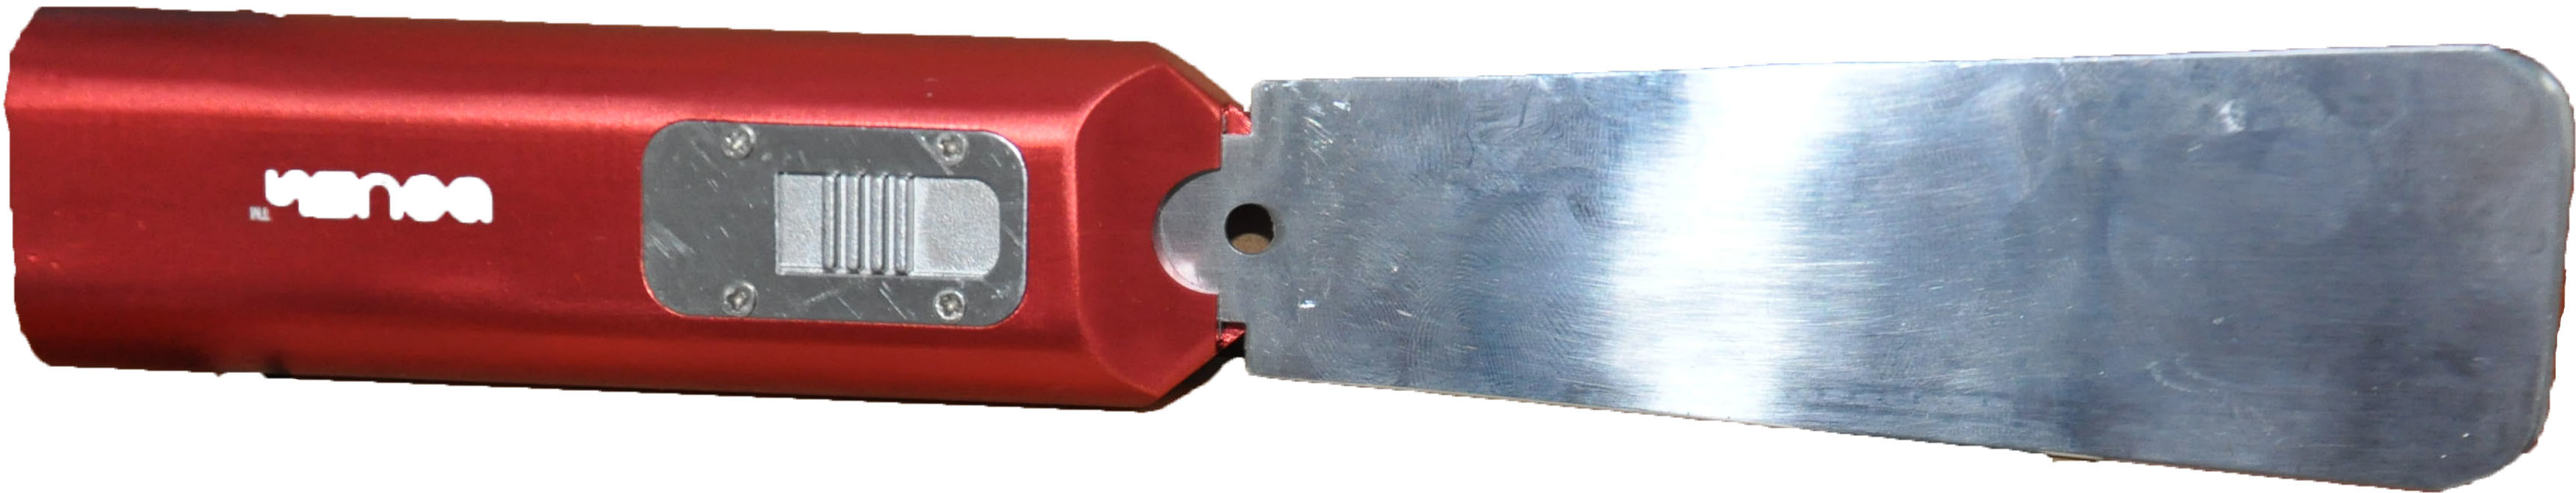 Cold Knife for Windshield Tool for Fuyao Brand